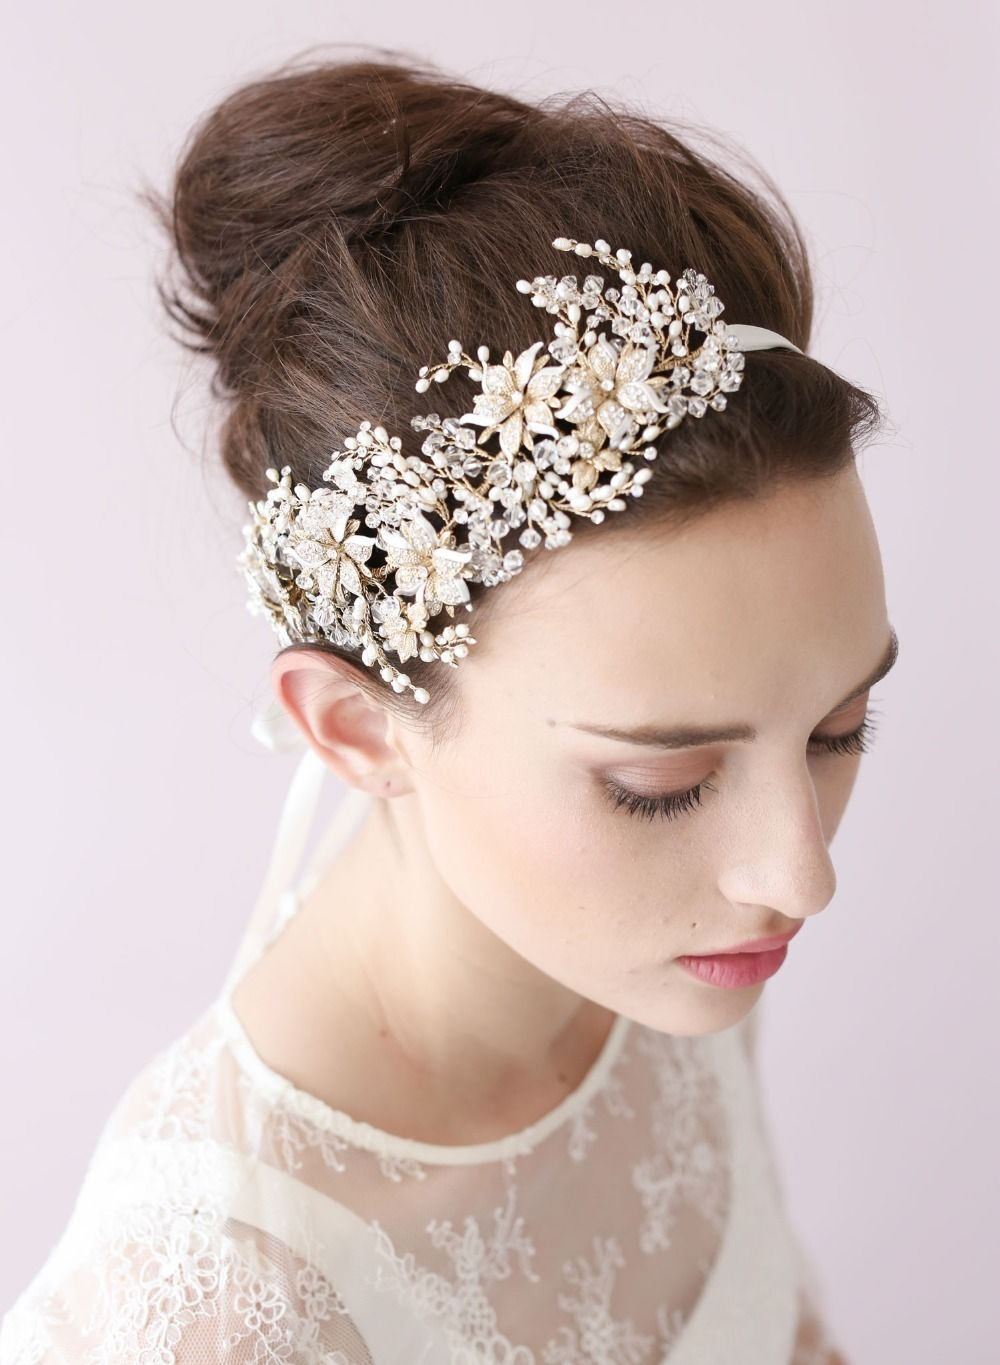 cheap flower hair accessories wedding, buy quality accessory